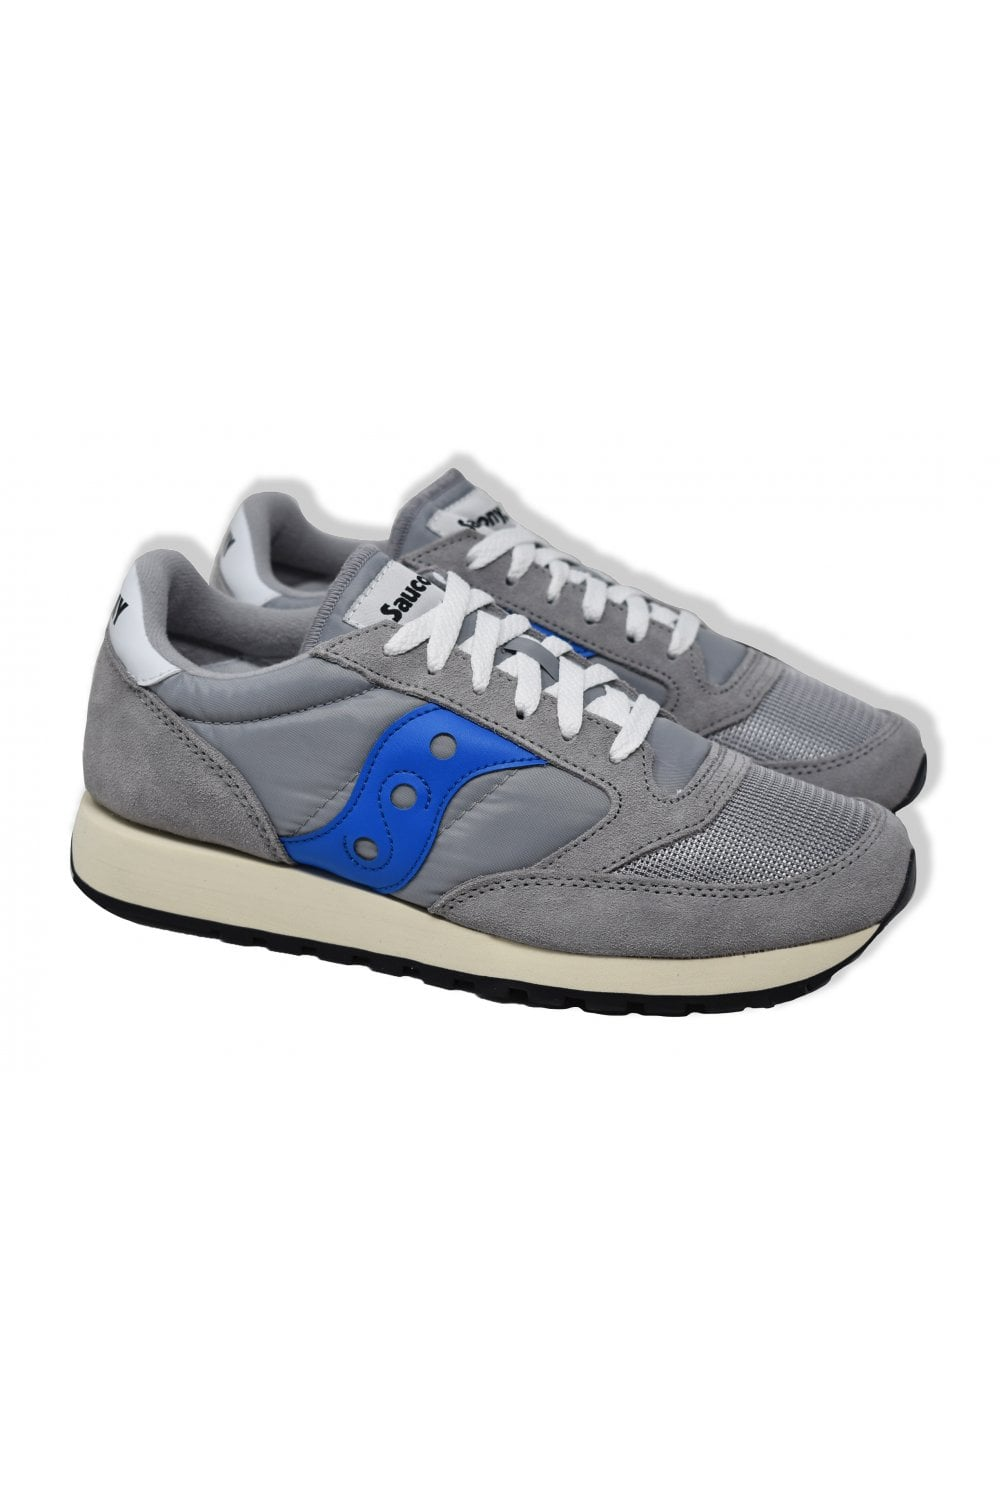 best sneakers 00258 5ee47 Jazz Original Vintage (Grey/Blue)